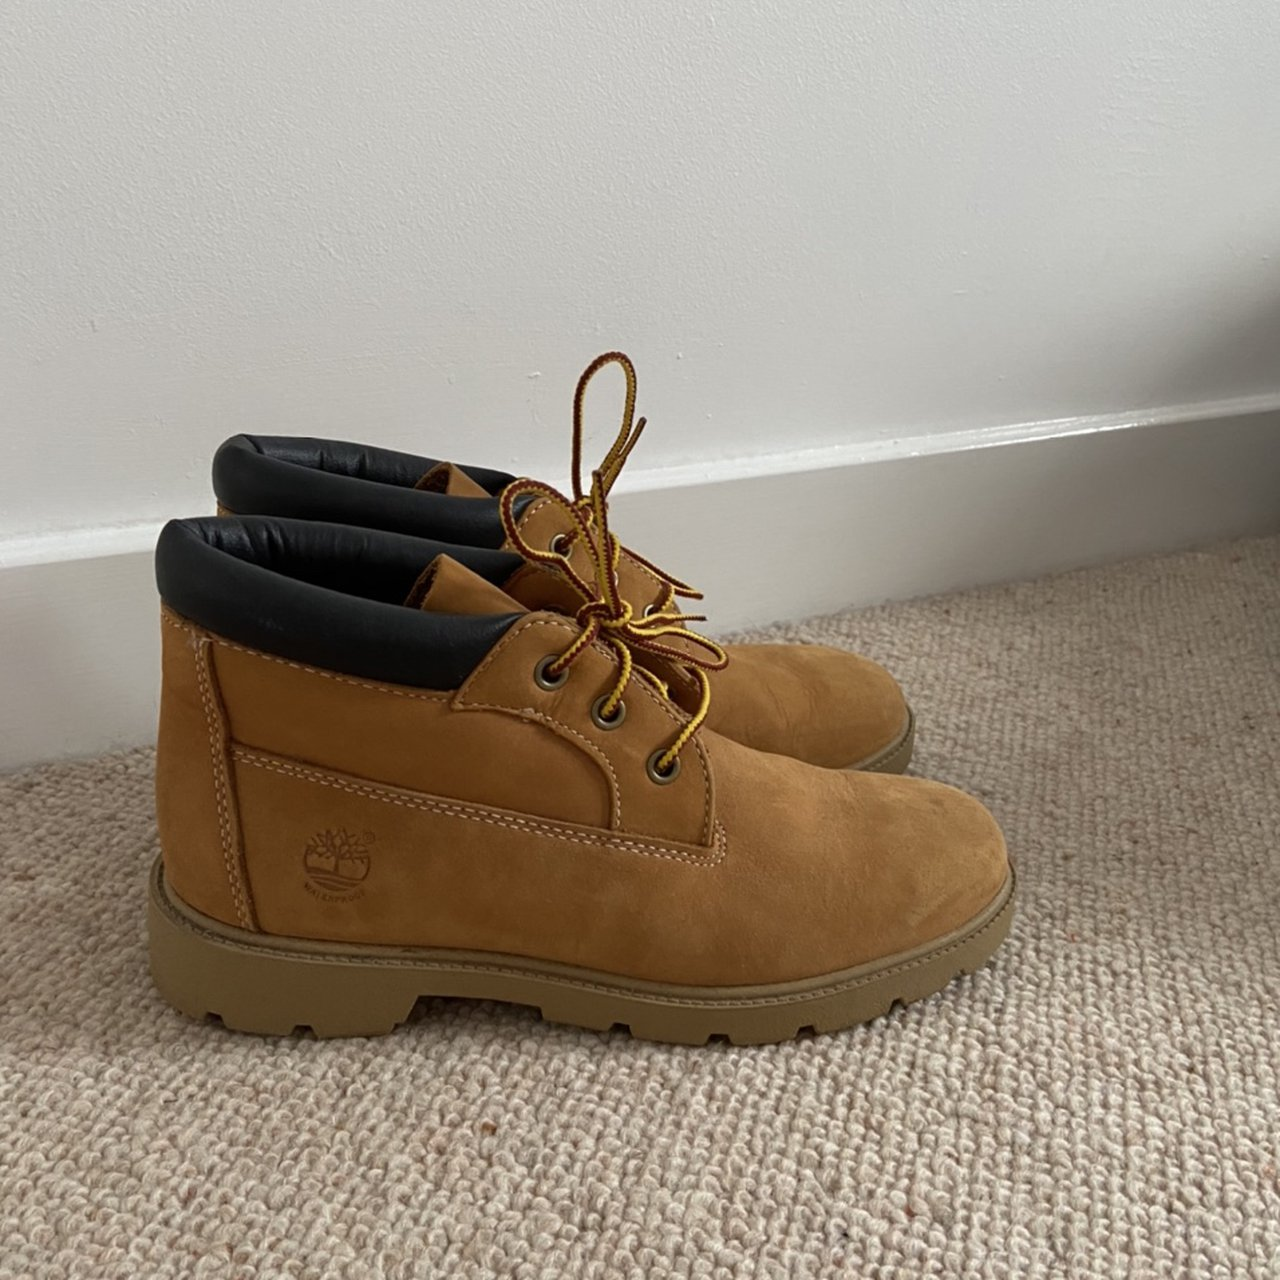 Women's Timberland low cut boots for